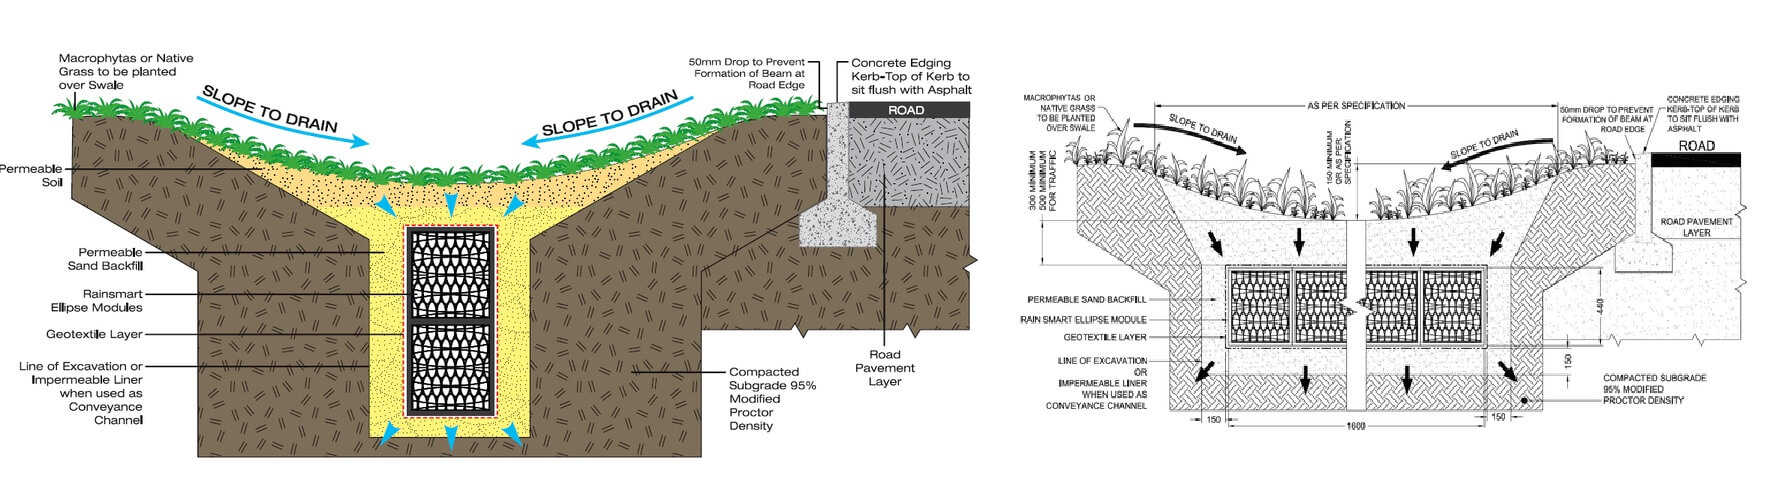 Bio-Retention Basin Diagram